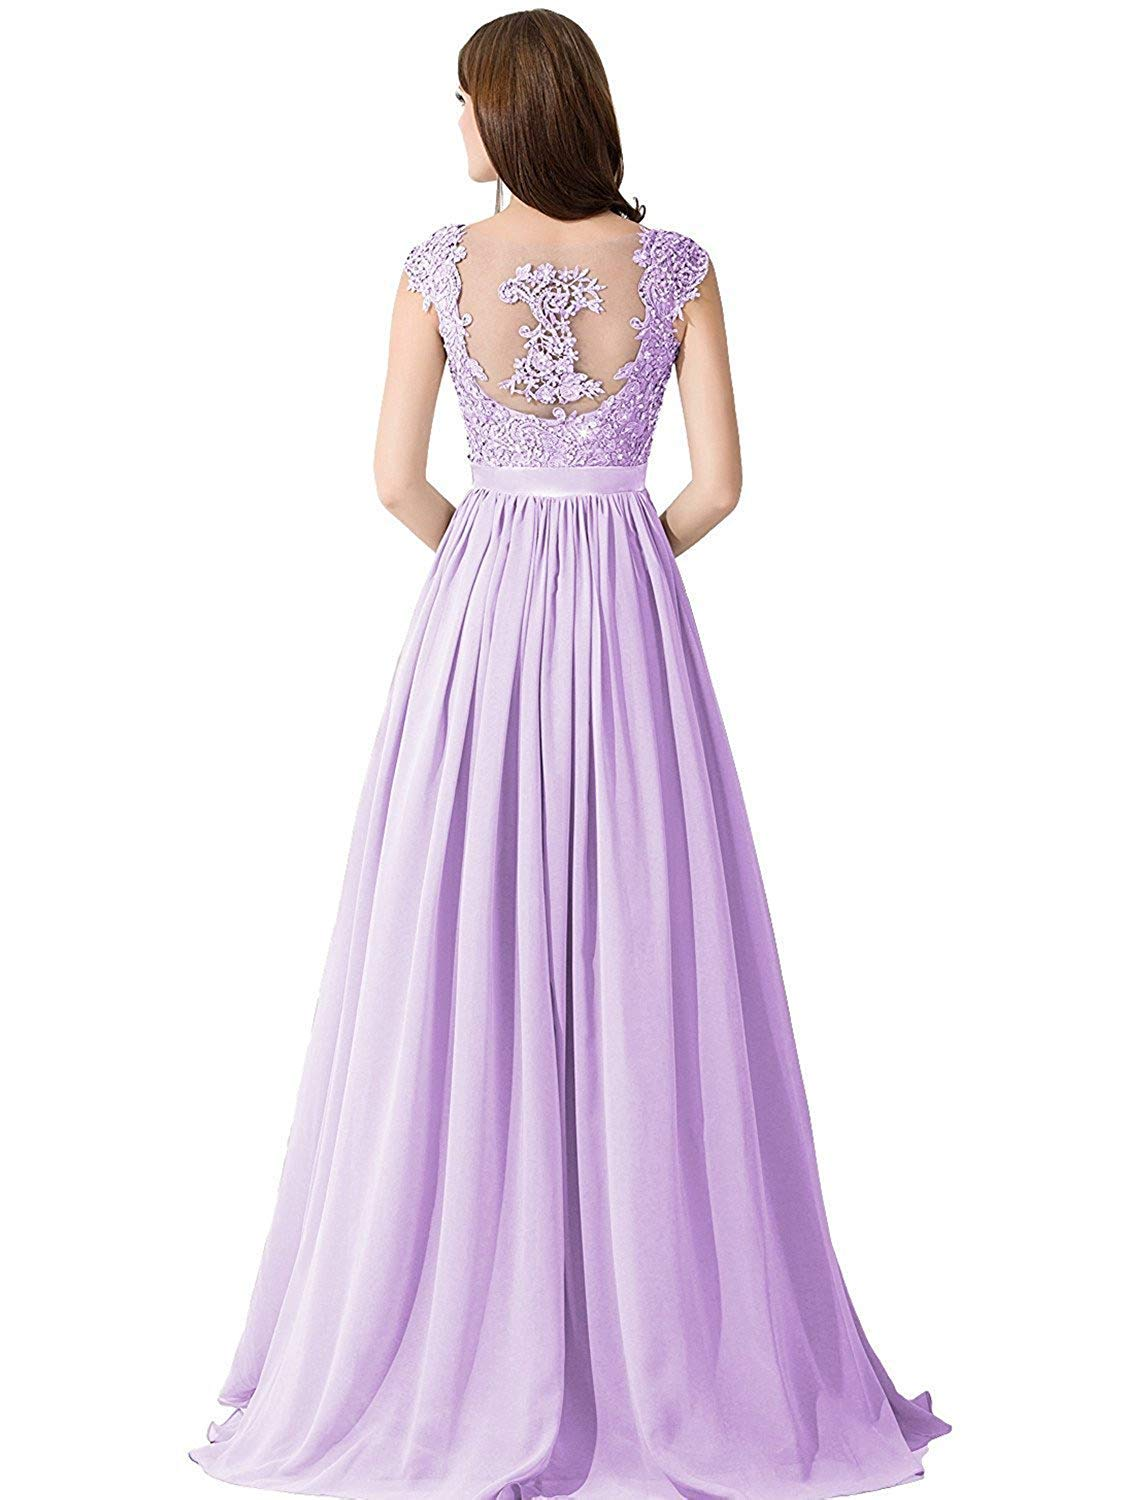 0b884d018 Babyonlinedress Women's Elegant Lace Chiffon Maxi Evening Cocktail Party  Gowns,Lilac,Size 16